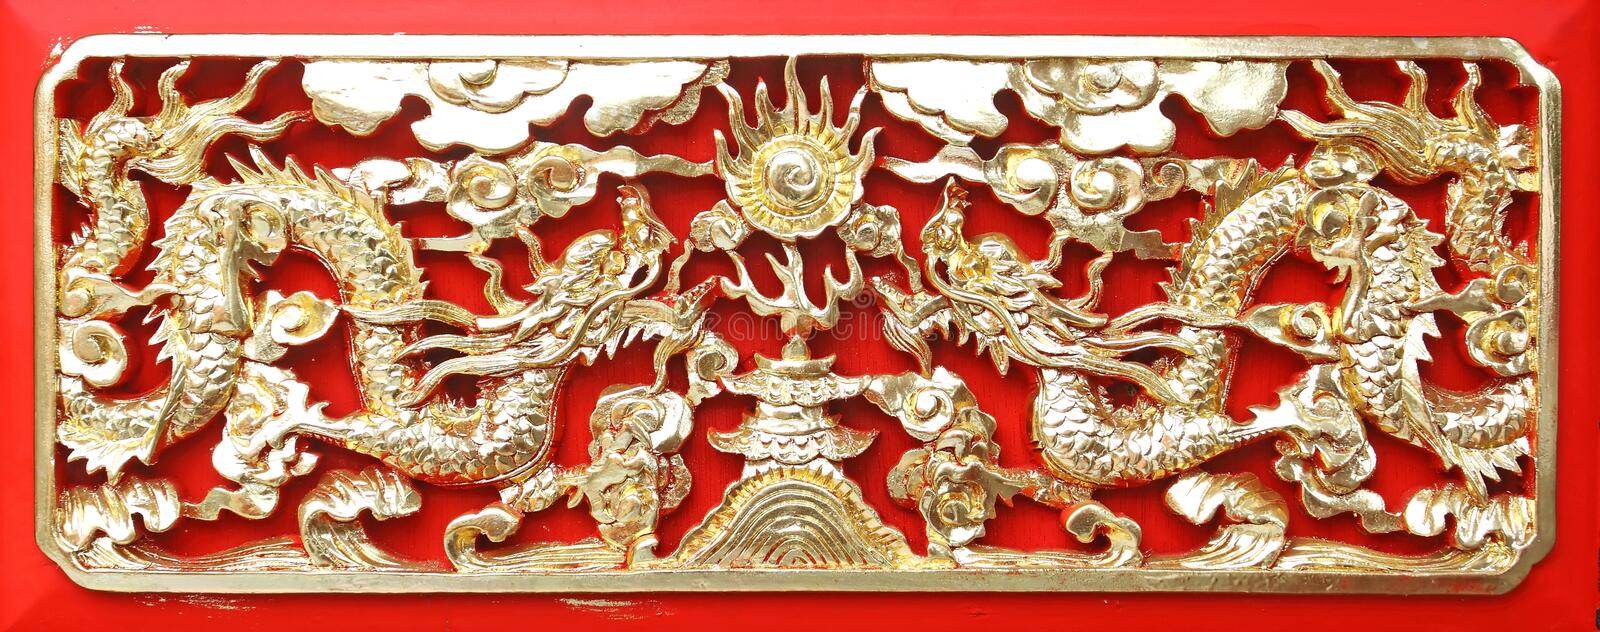 Golden dragon(Chinese: Long) wood carving royalty free stock images